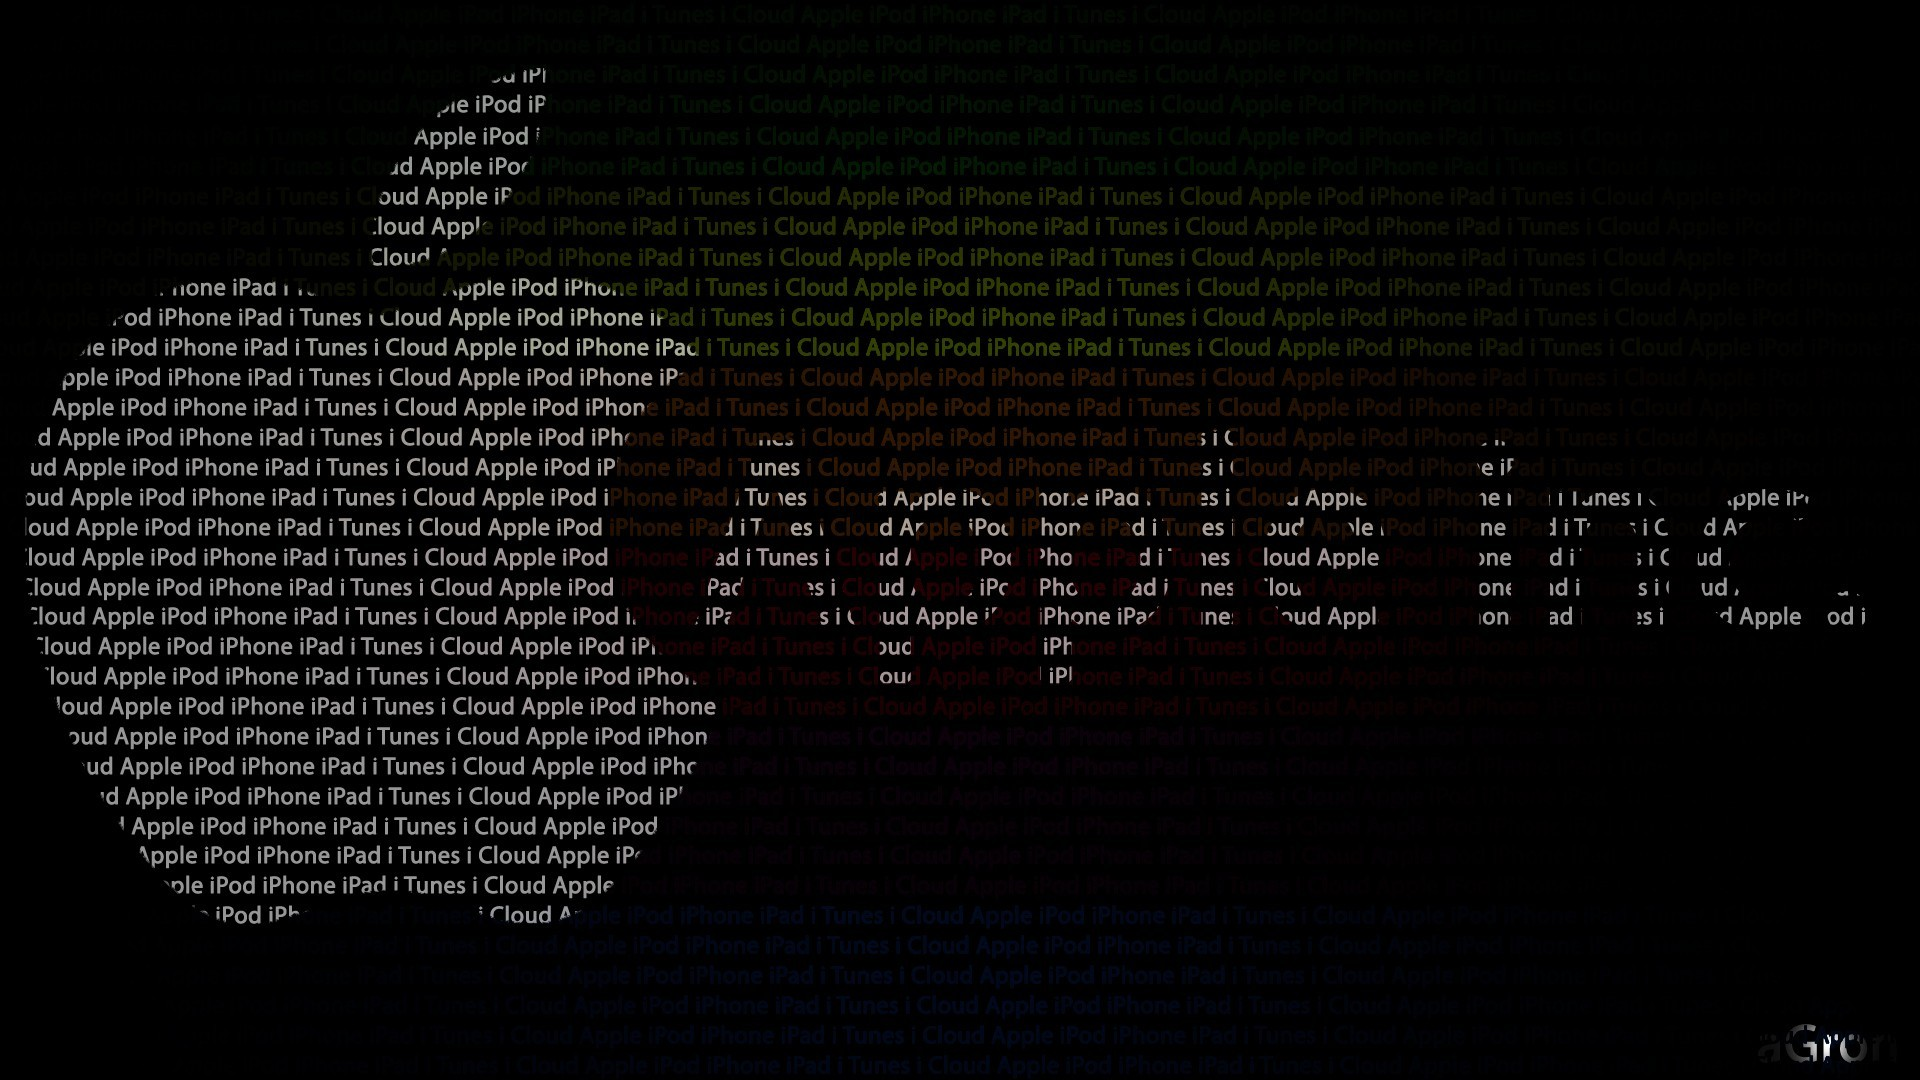 apple inc ipod ipad HD Wallpaper